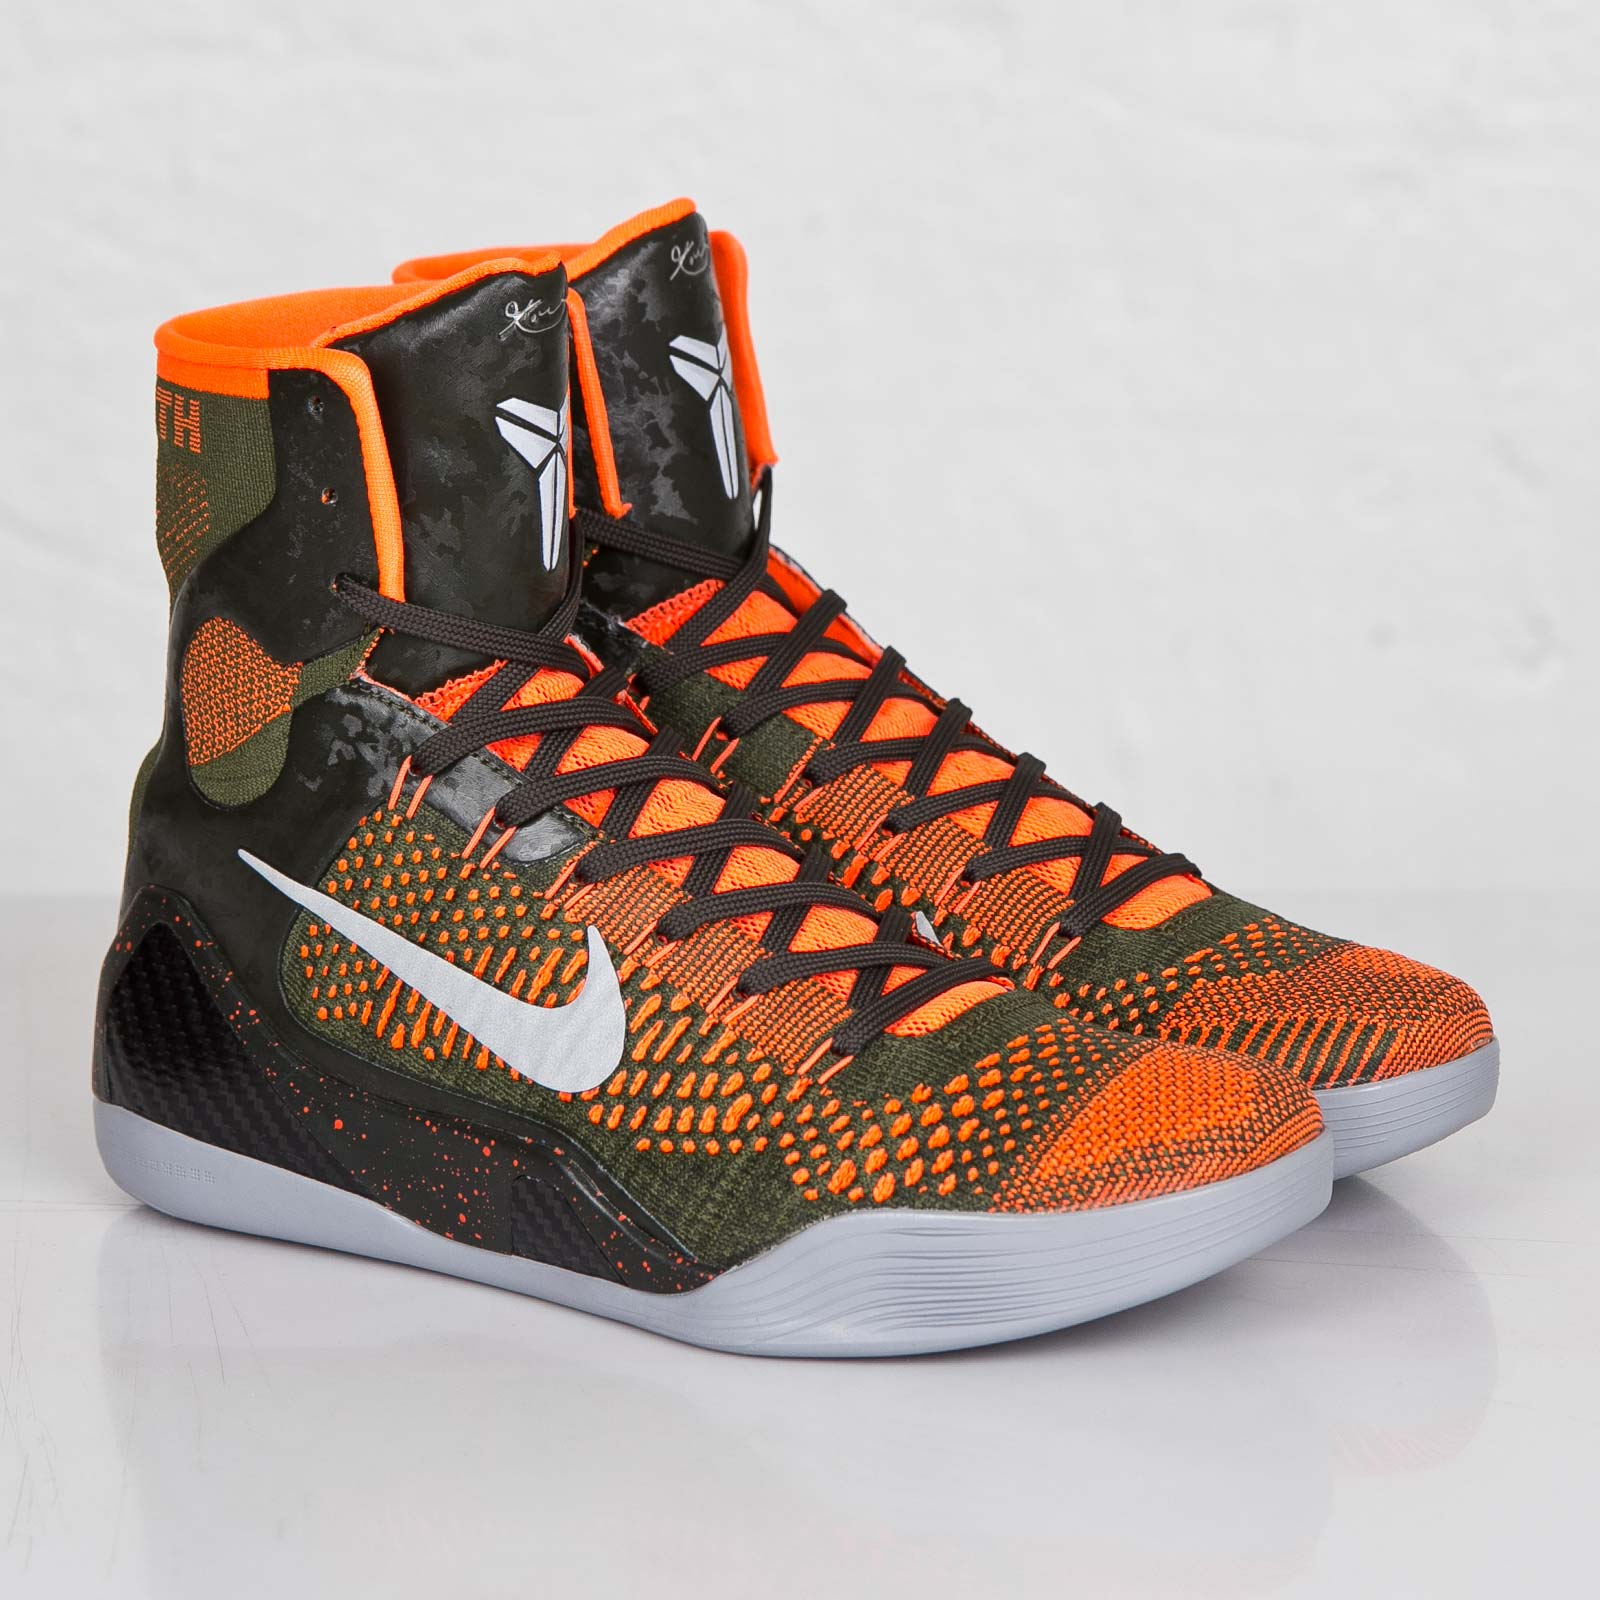 100% authentic 1820a b91e2 Nike Kobe IX Elite - 630847-303 - Sneakersnstuff | sneakers ...